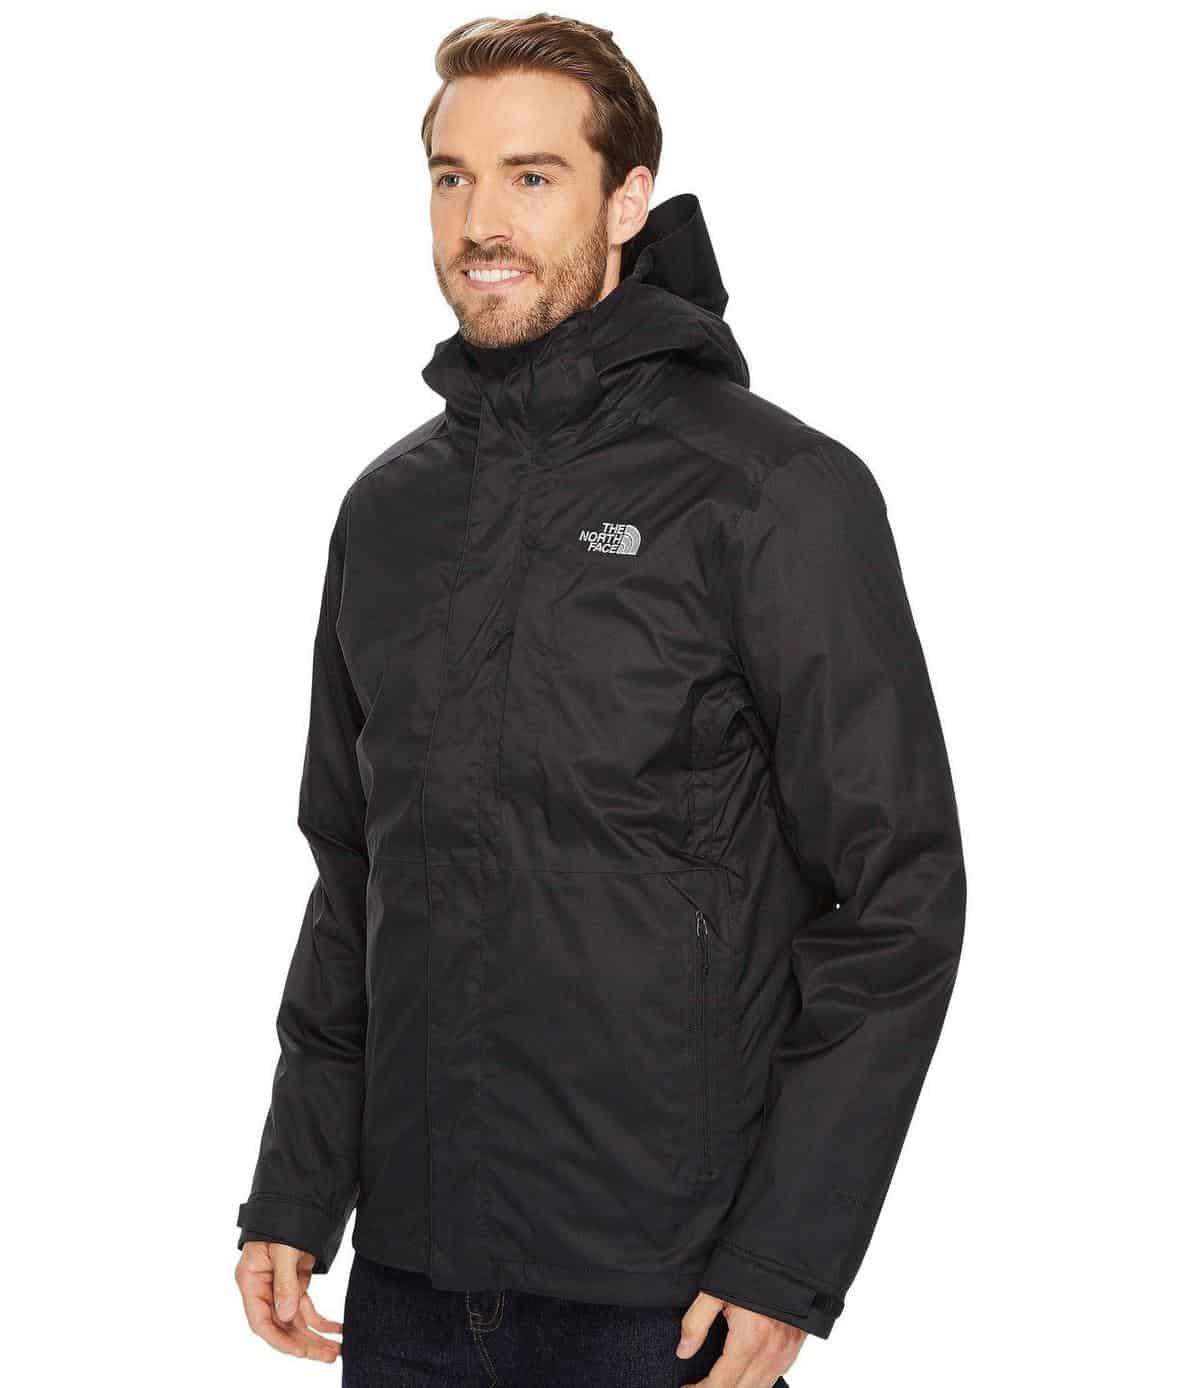 The North Face Altier Triclimate Jacket